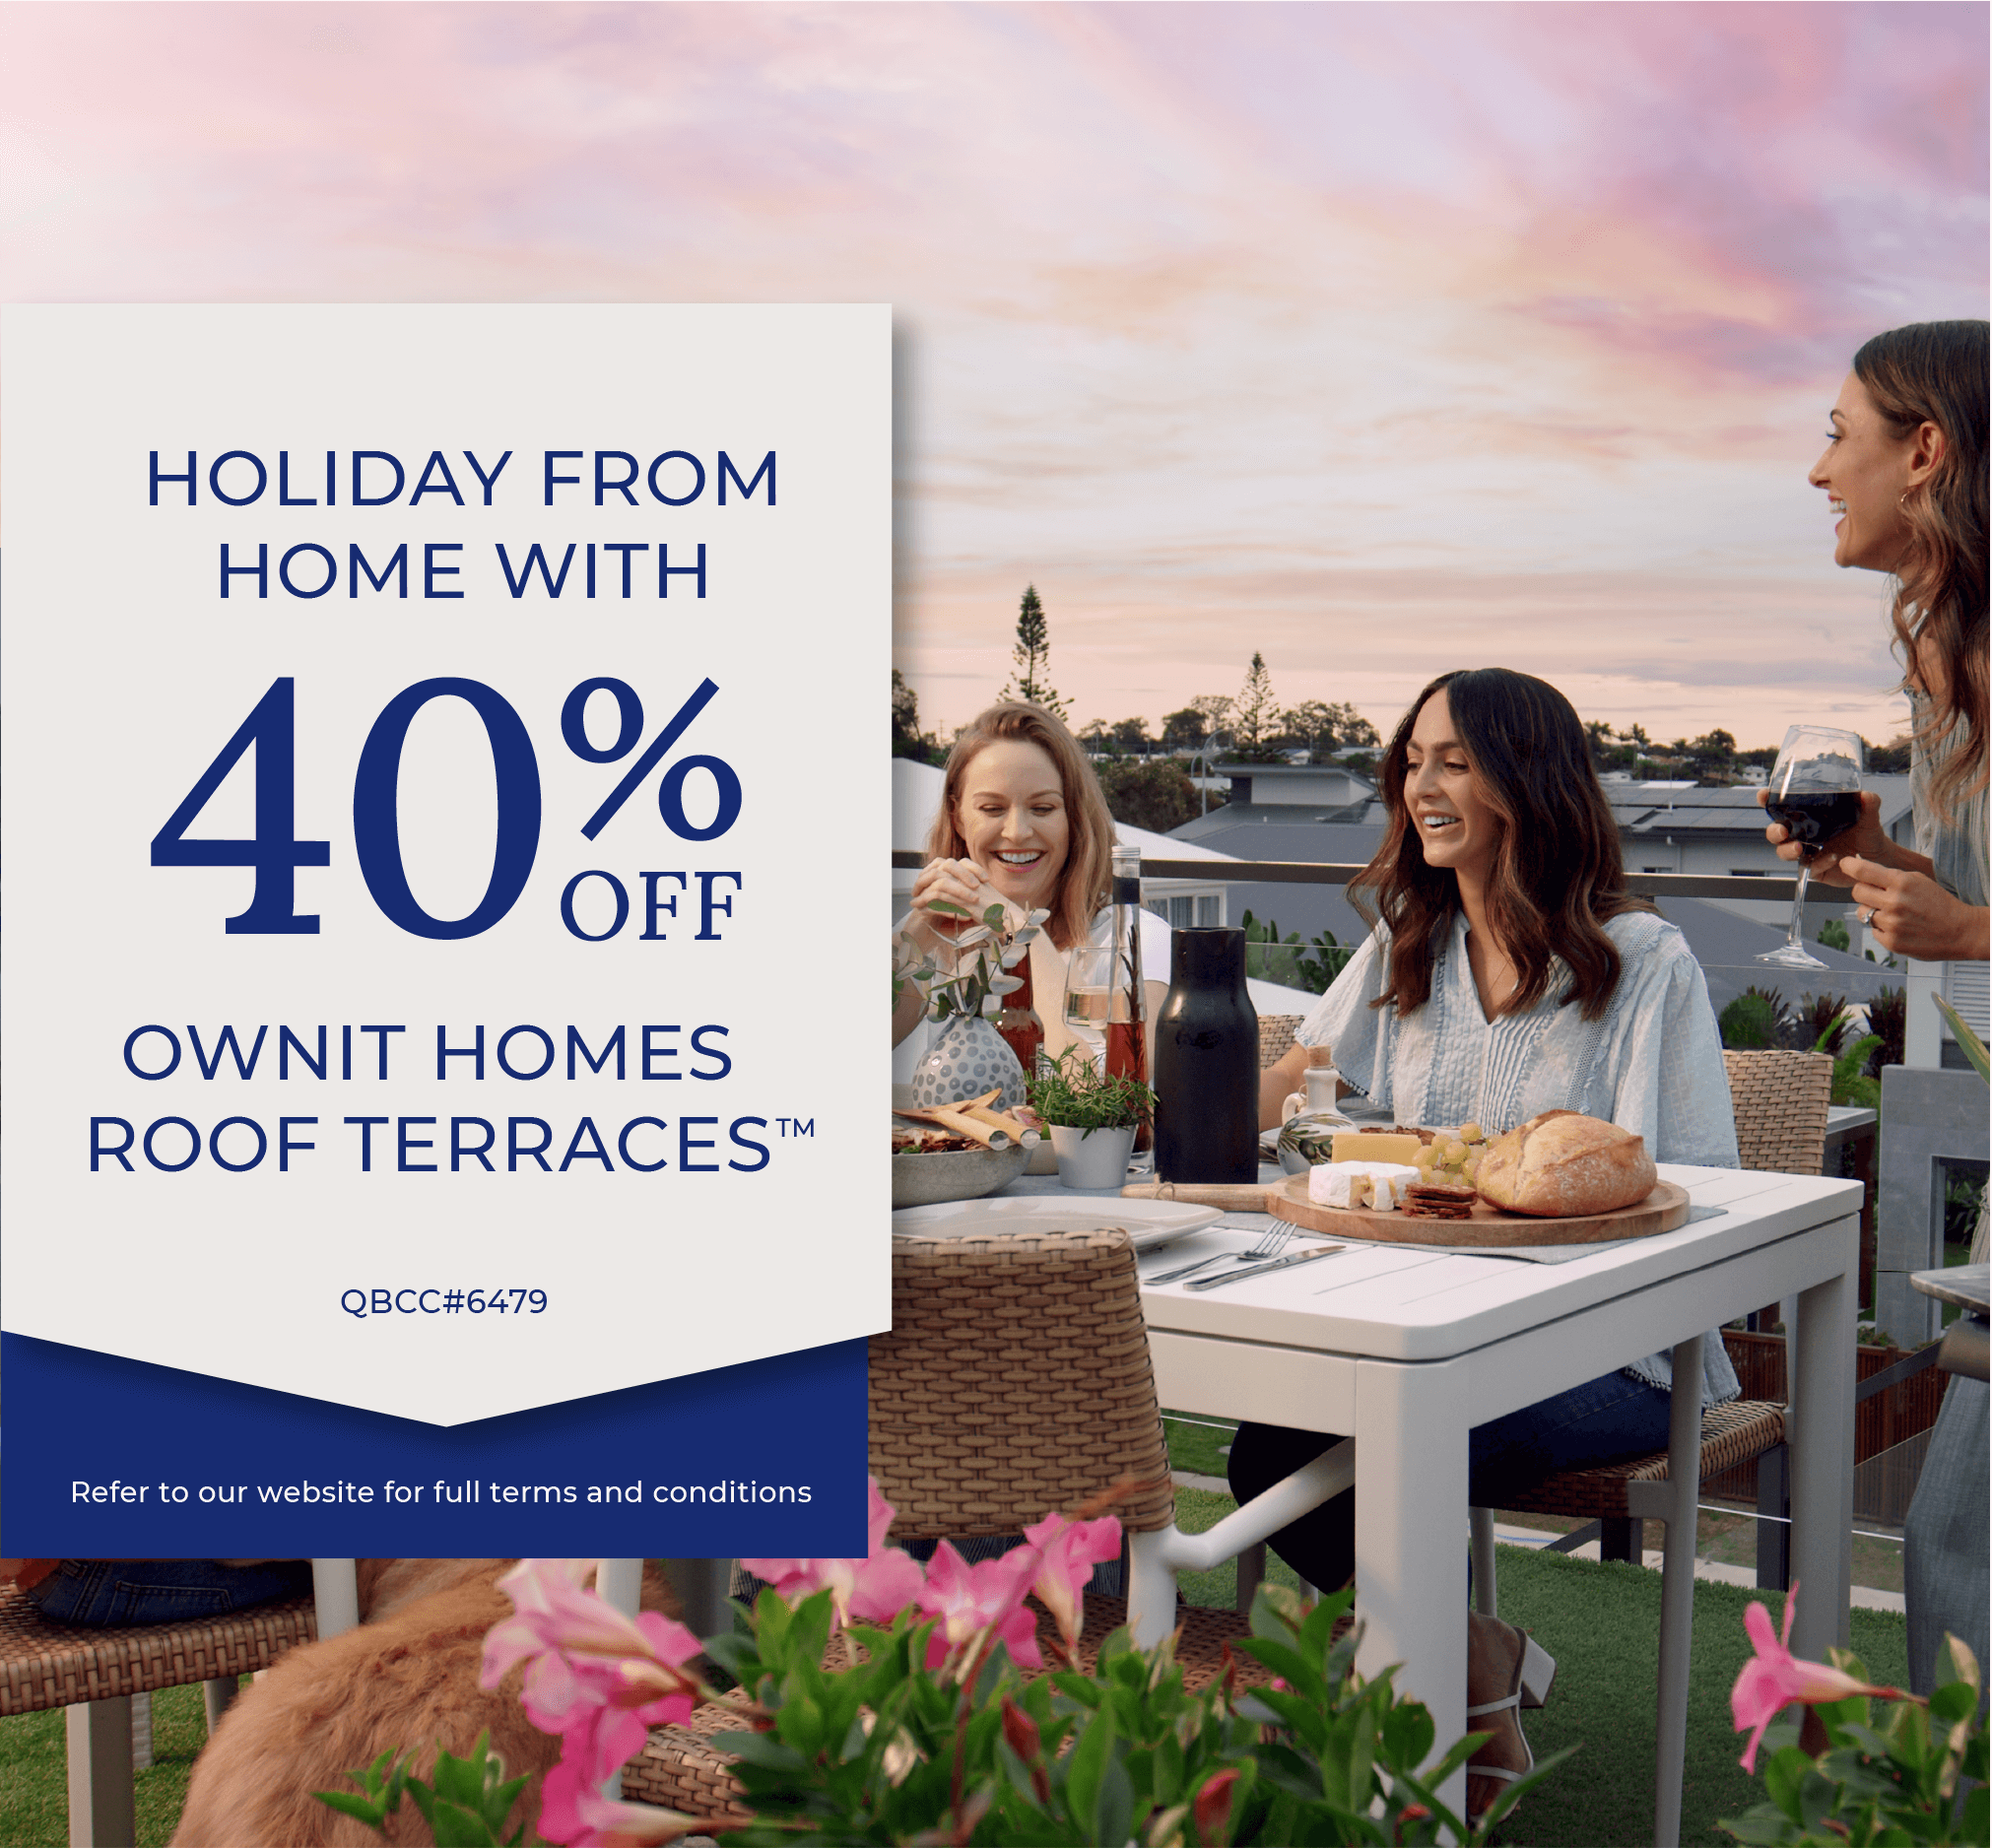 Marketing Image for 40% off Roof Terraces promotion